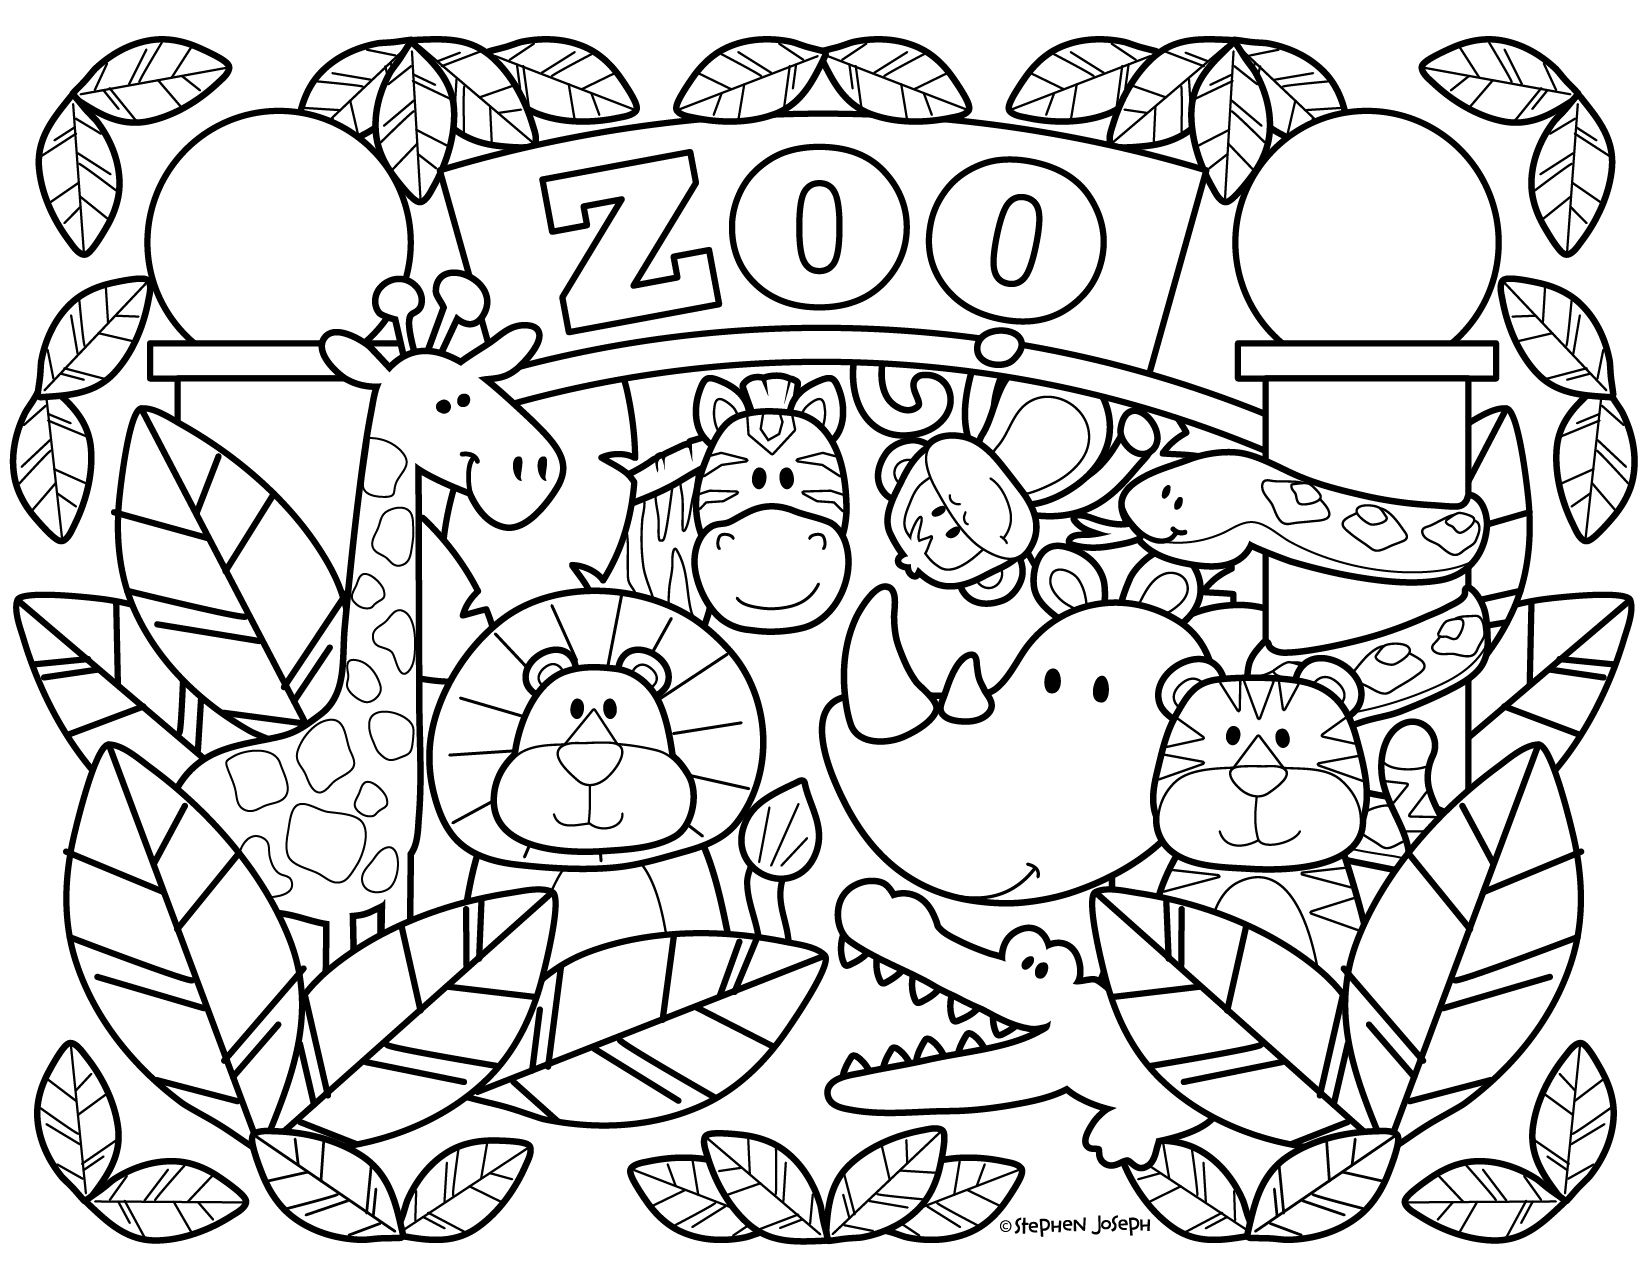 Zoo Coloring Pages - Printable & Free! By Stephen Joseph ... | free printable colouring pages zoo animals